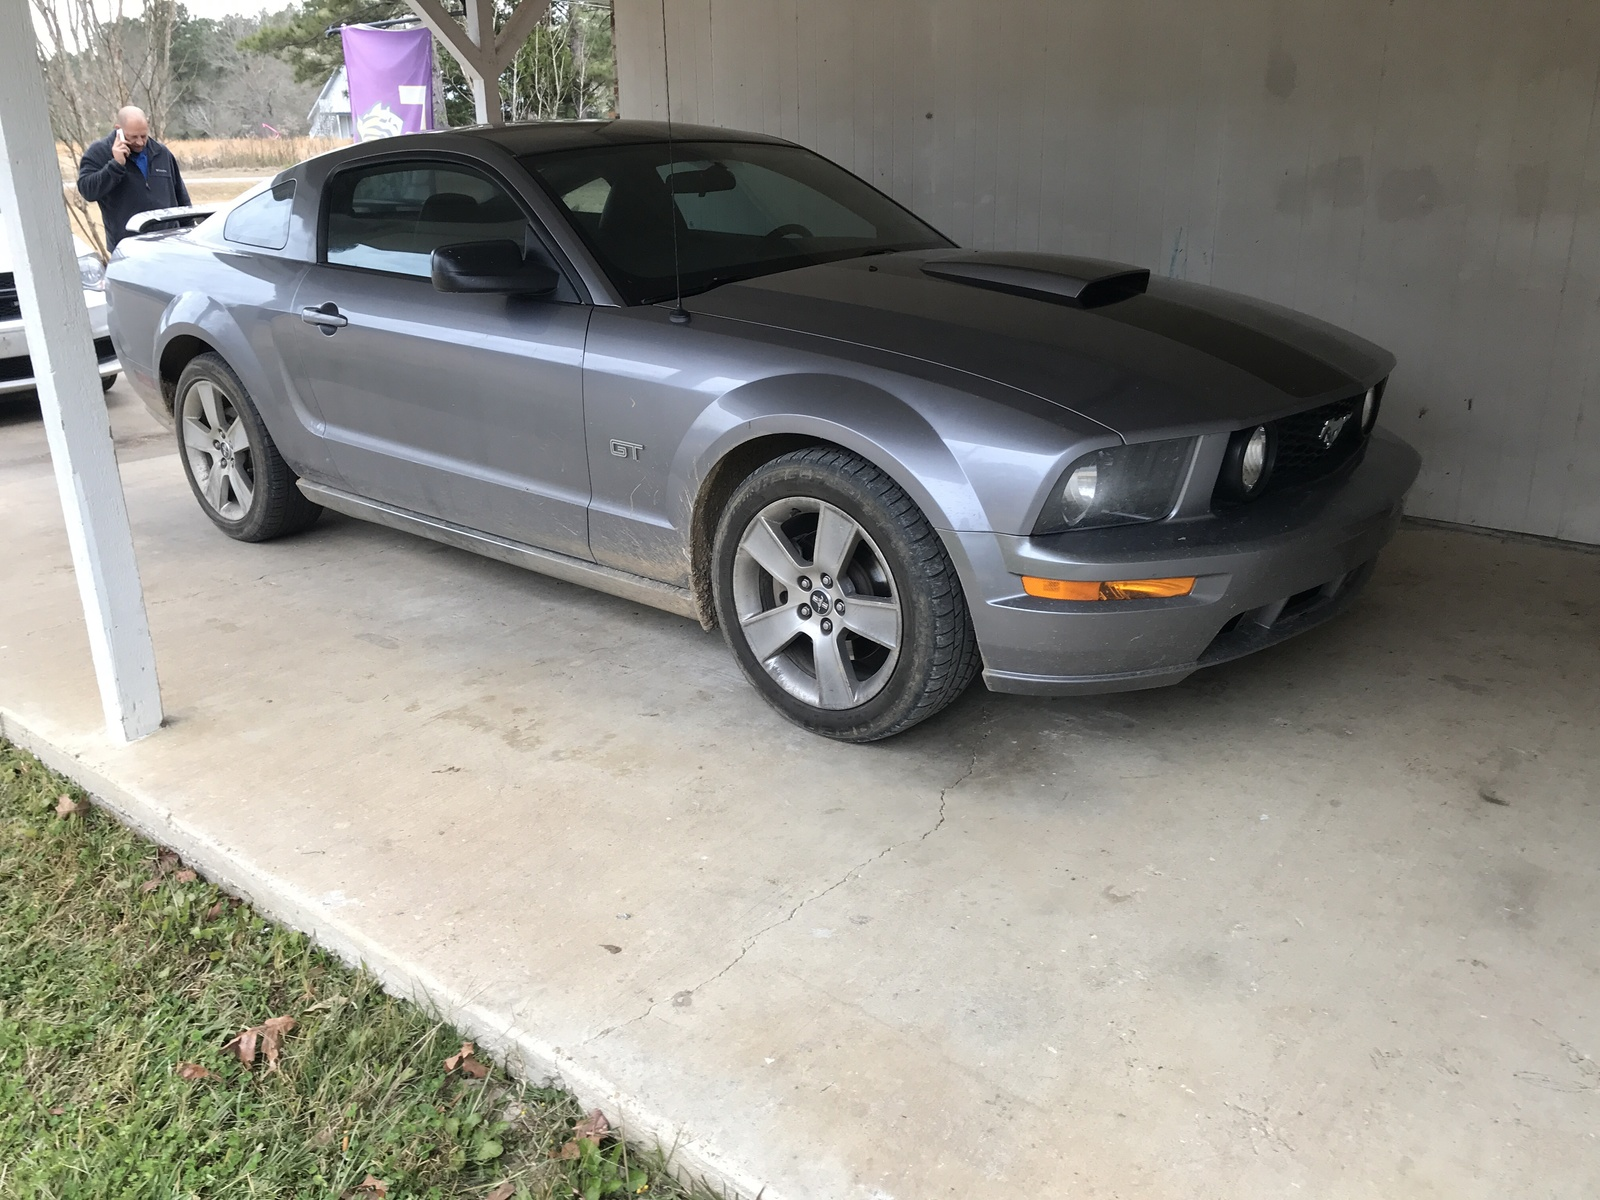 I recently bought a 2007 mustang gt i have been told its a hurst edition cali special edition made by shelby its is 5 speed with 4 6l under the hood